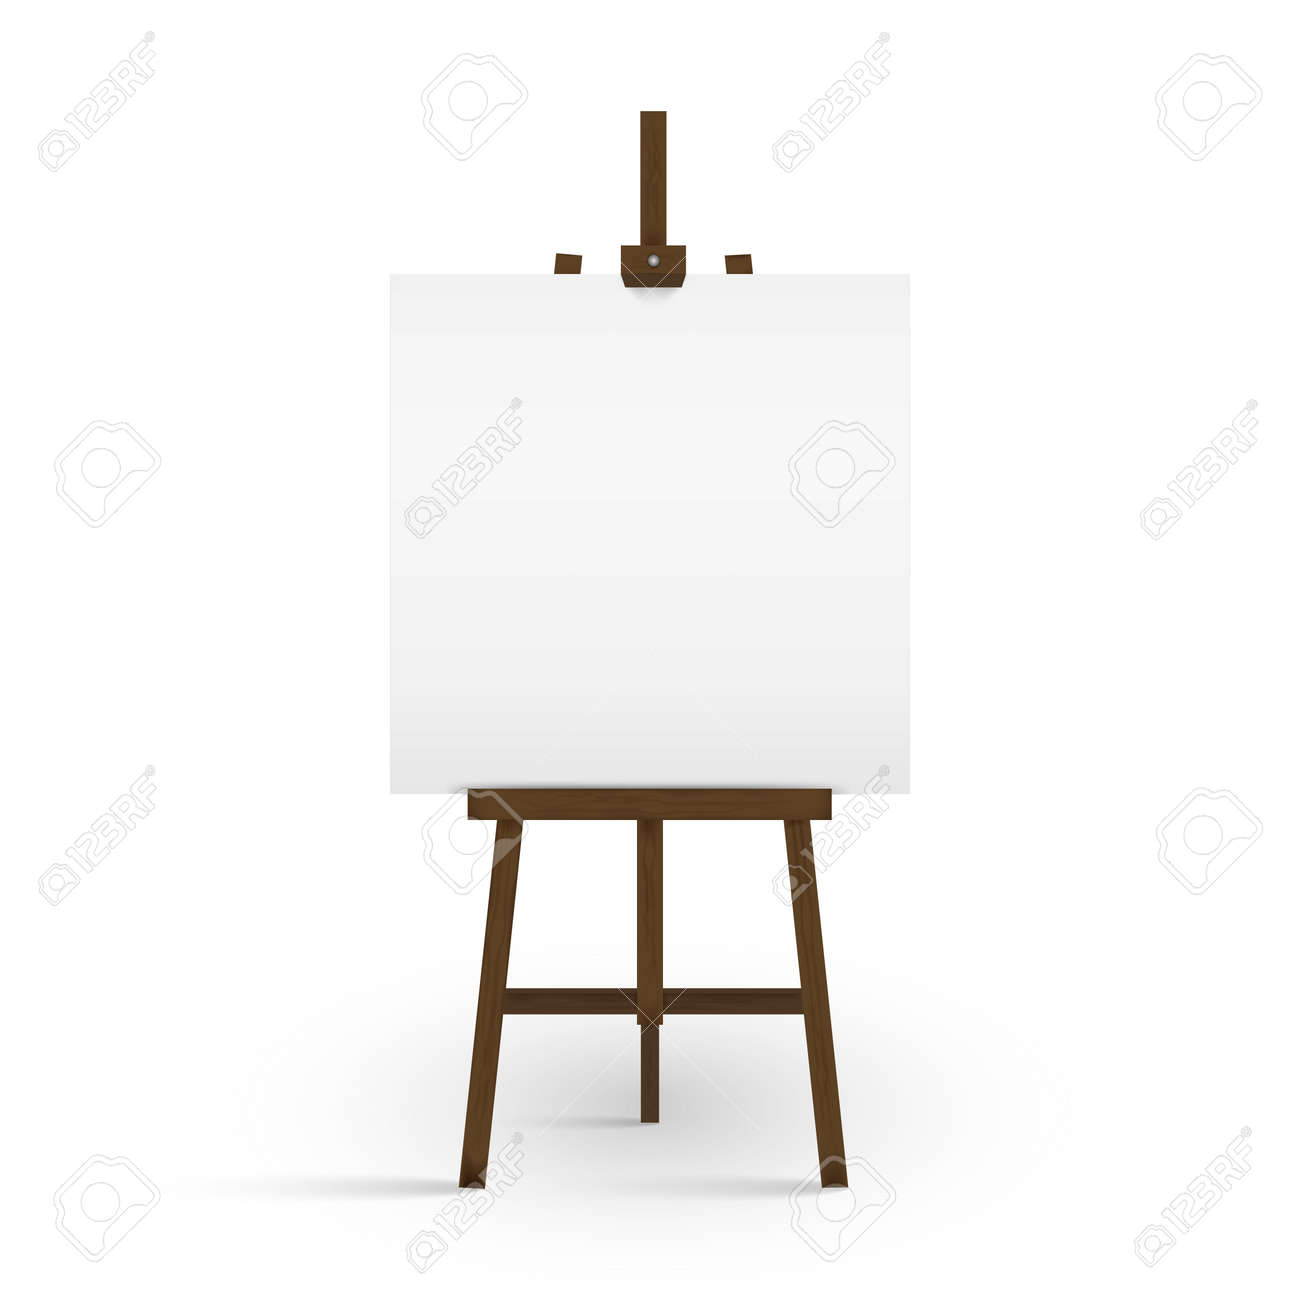 blank canvas on a artist easel blank art board and wooden easel rh 123rf com art easel clipart black and white art easel clipart